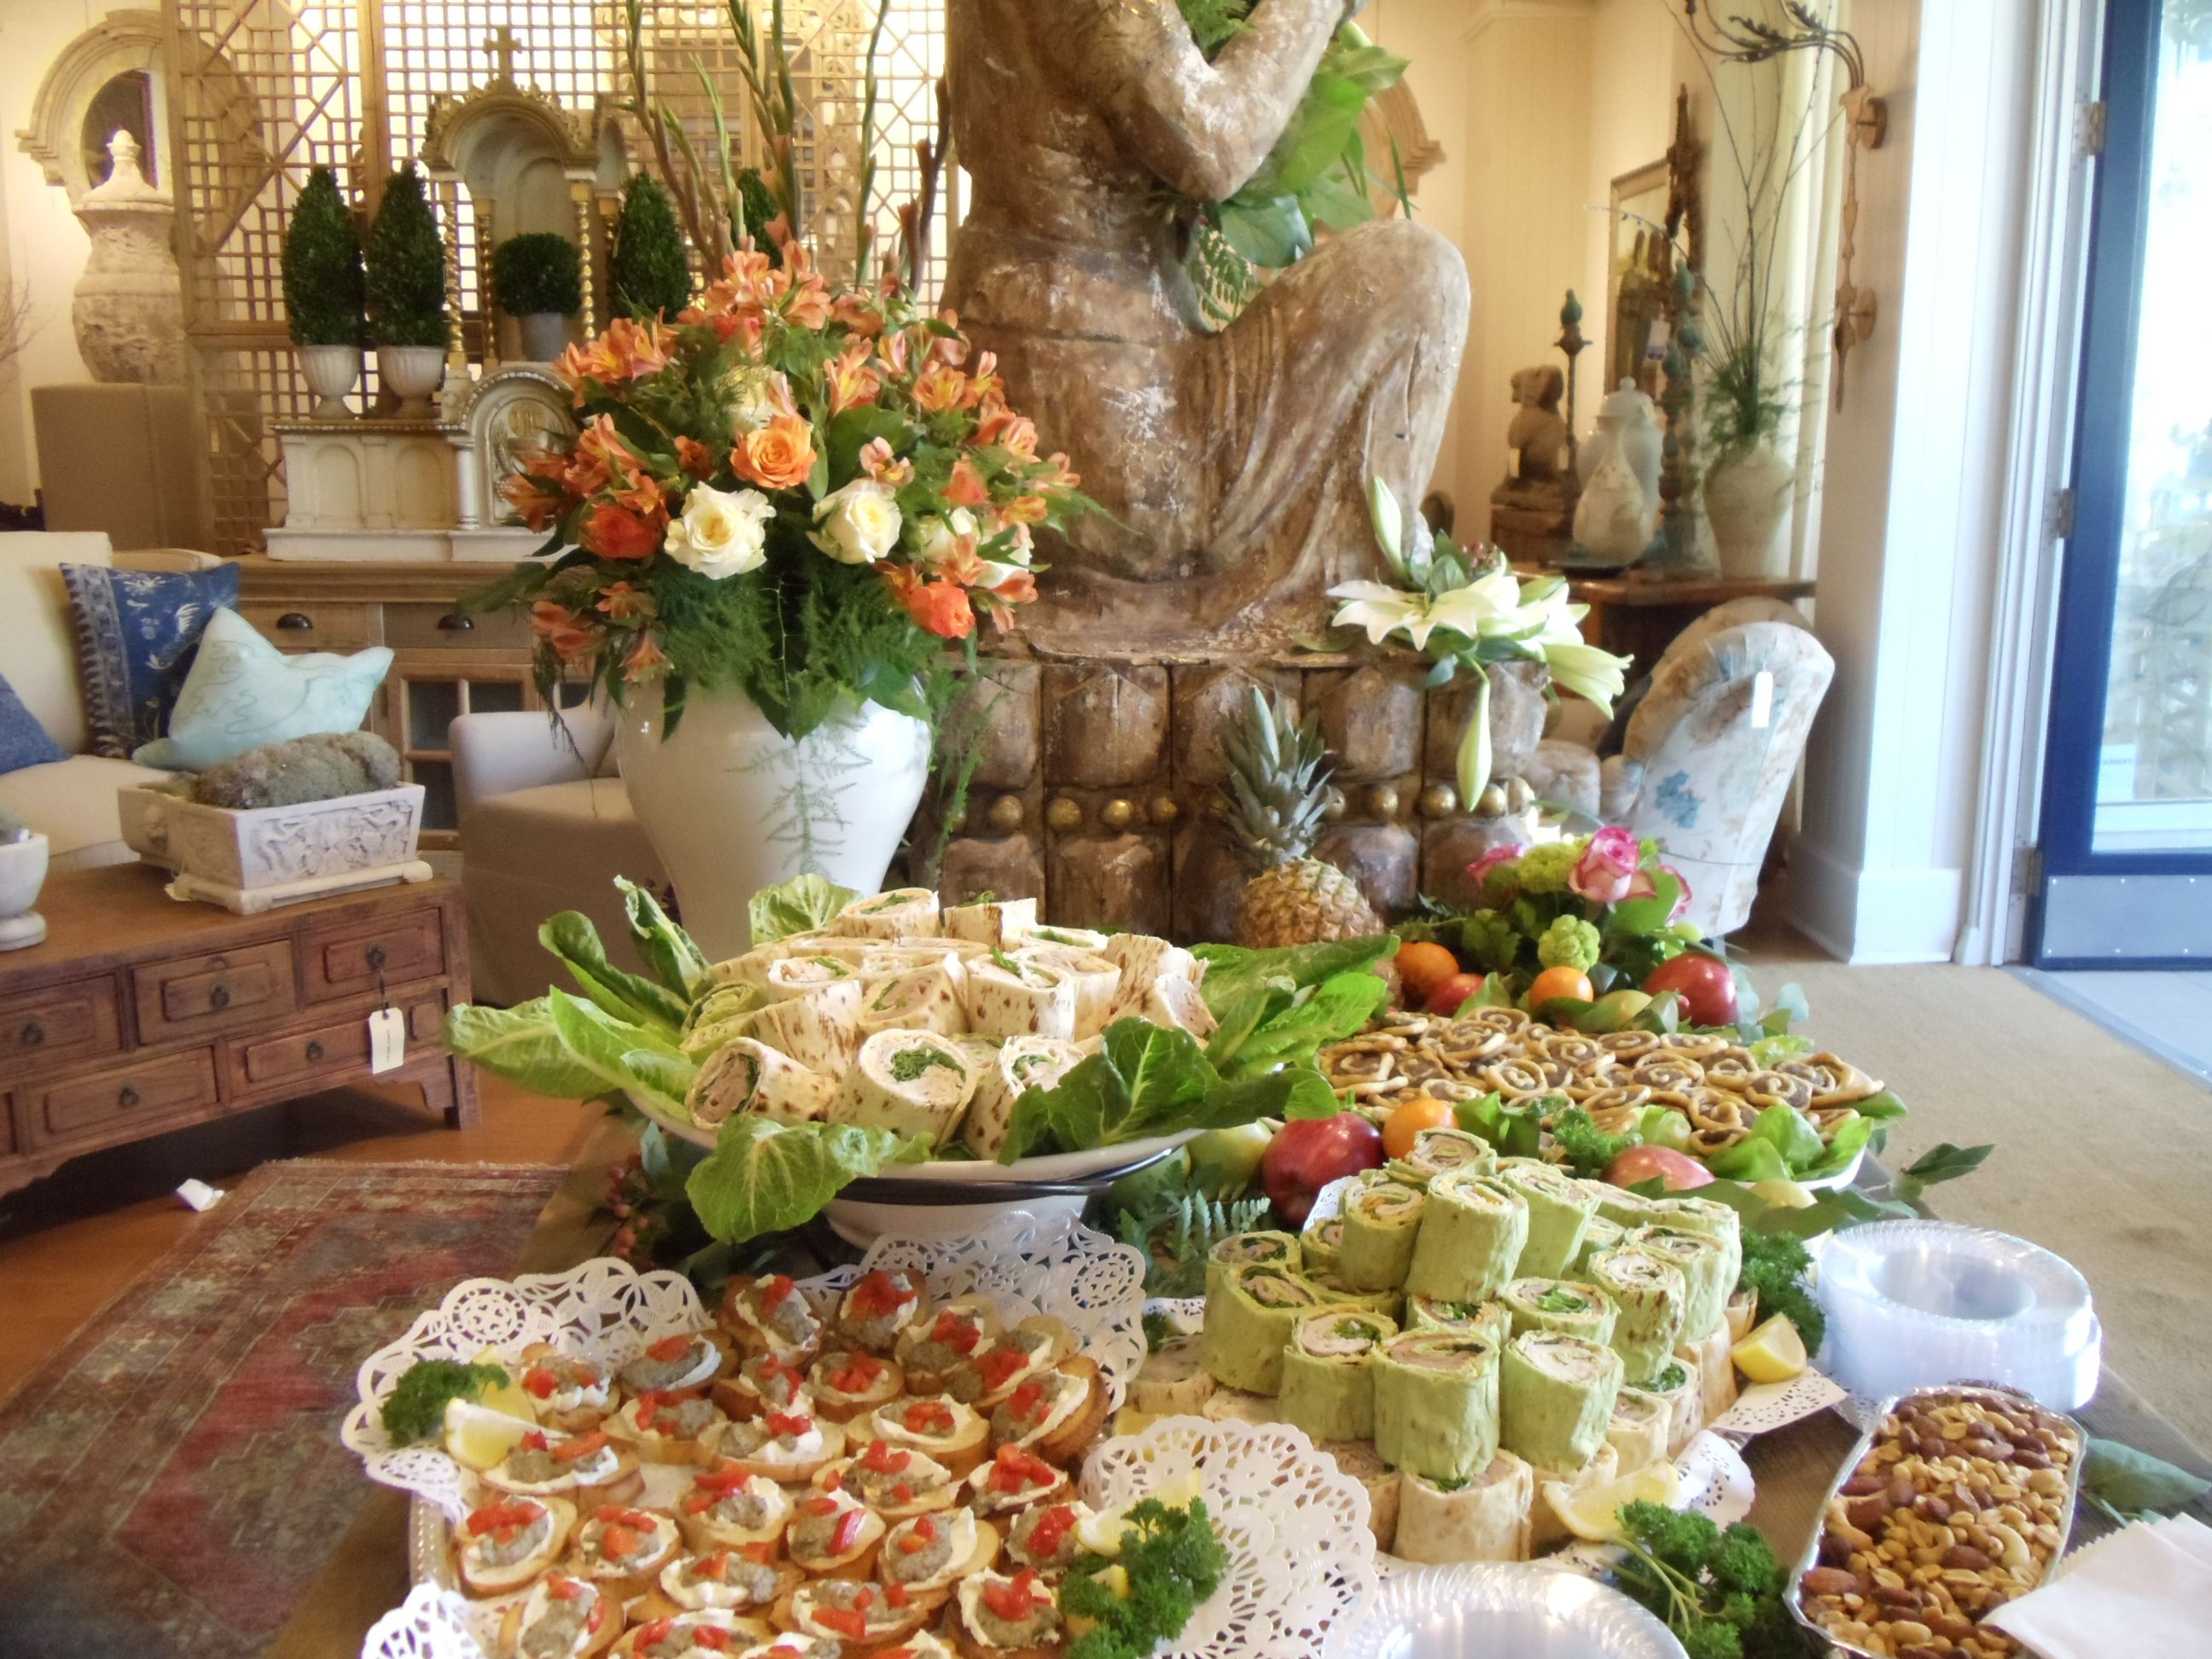 Receptions Food Displays And Prime Time On Pinterest: Food Presentation For Graduation Party